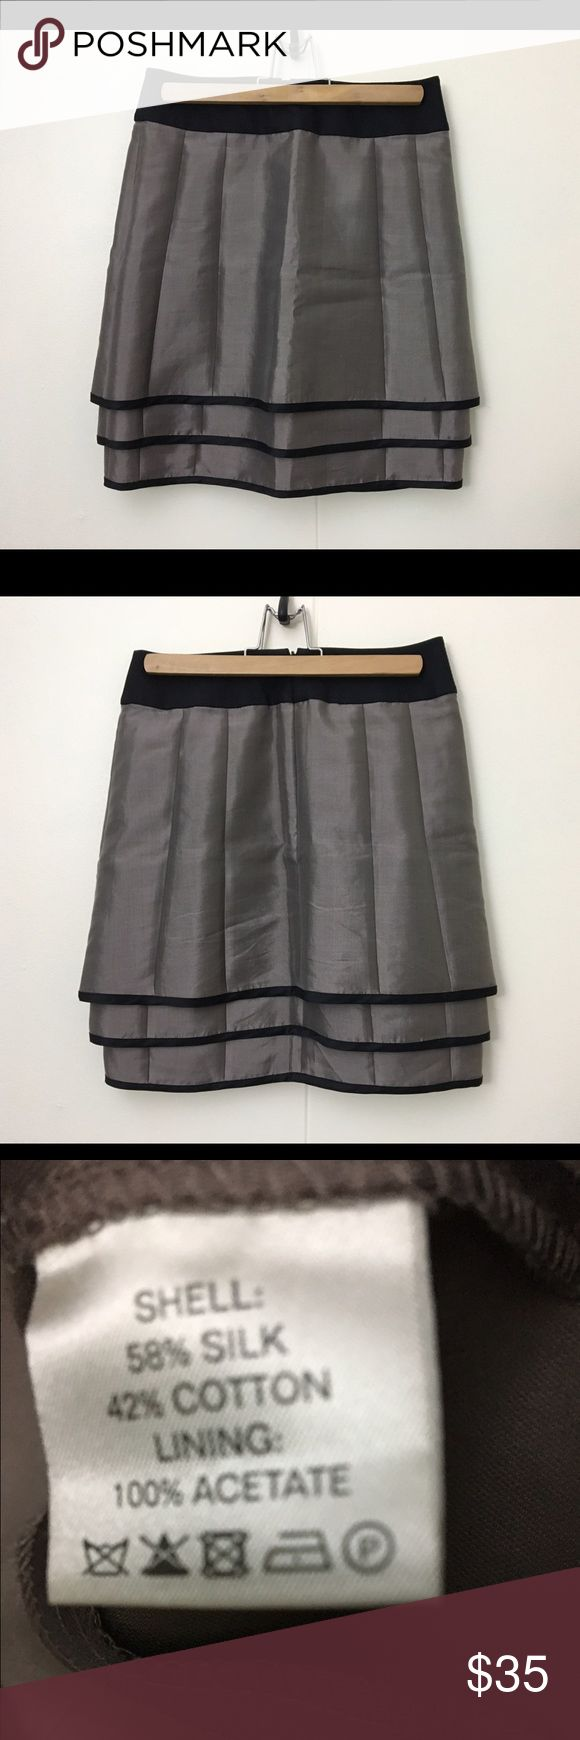 "Reiss silk full mini skirt 2 taupe tan olive gray EUC ☺️ so cute 👏👏🏻 waist 27"" length 19"" Reiss Skirts Mini"